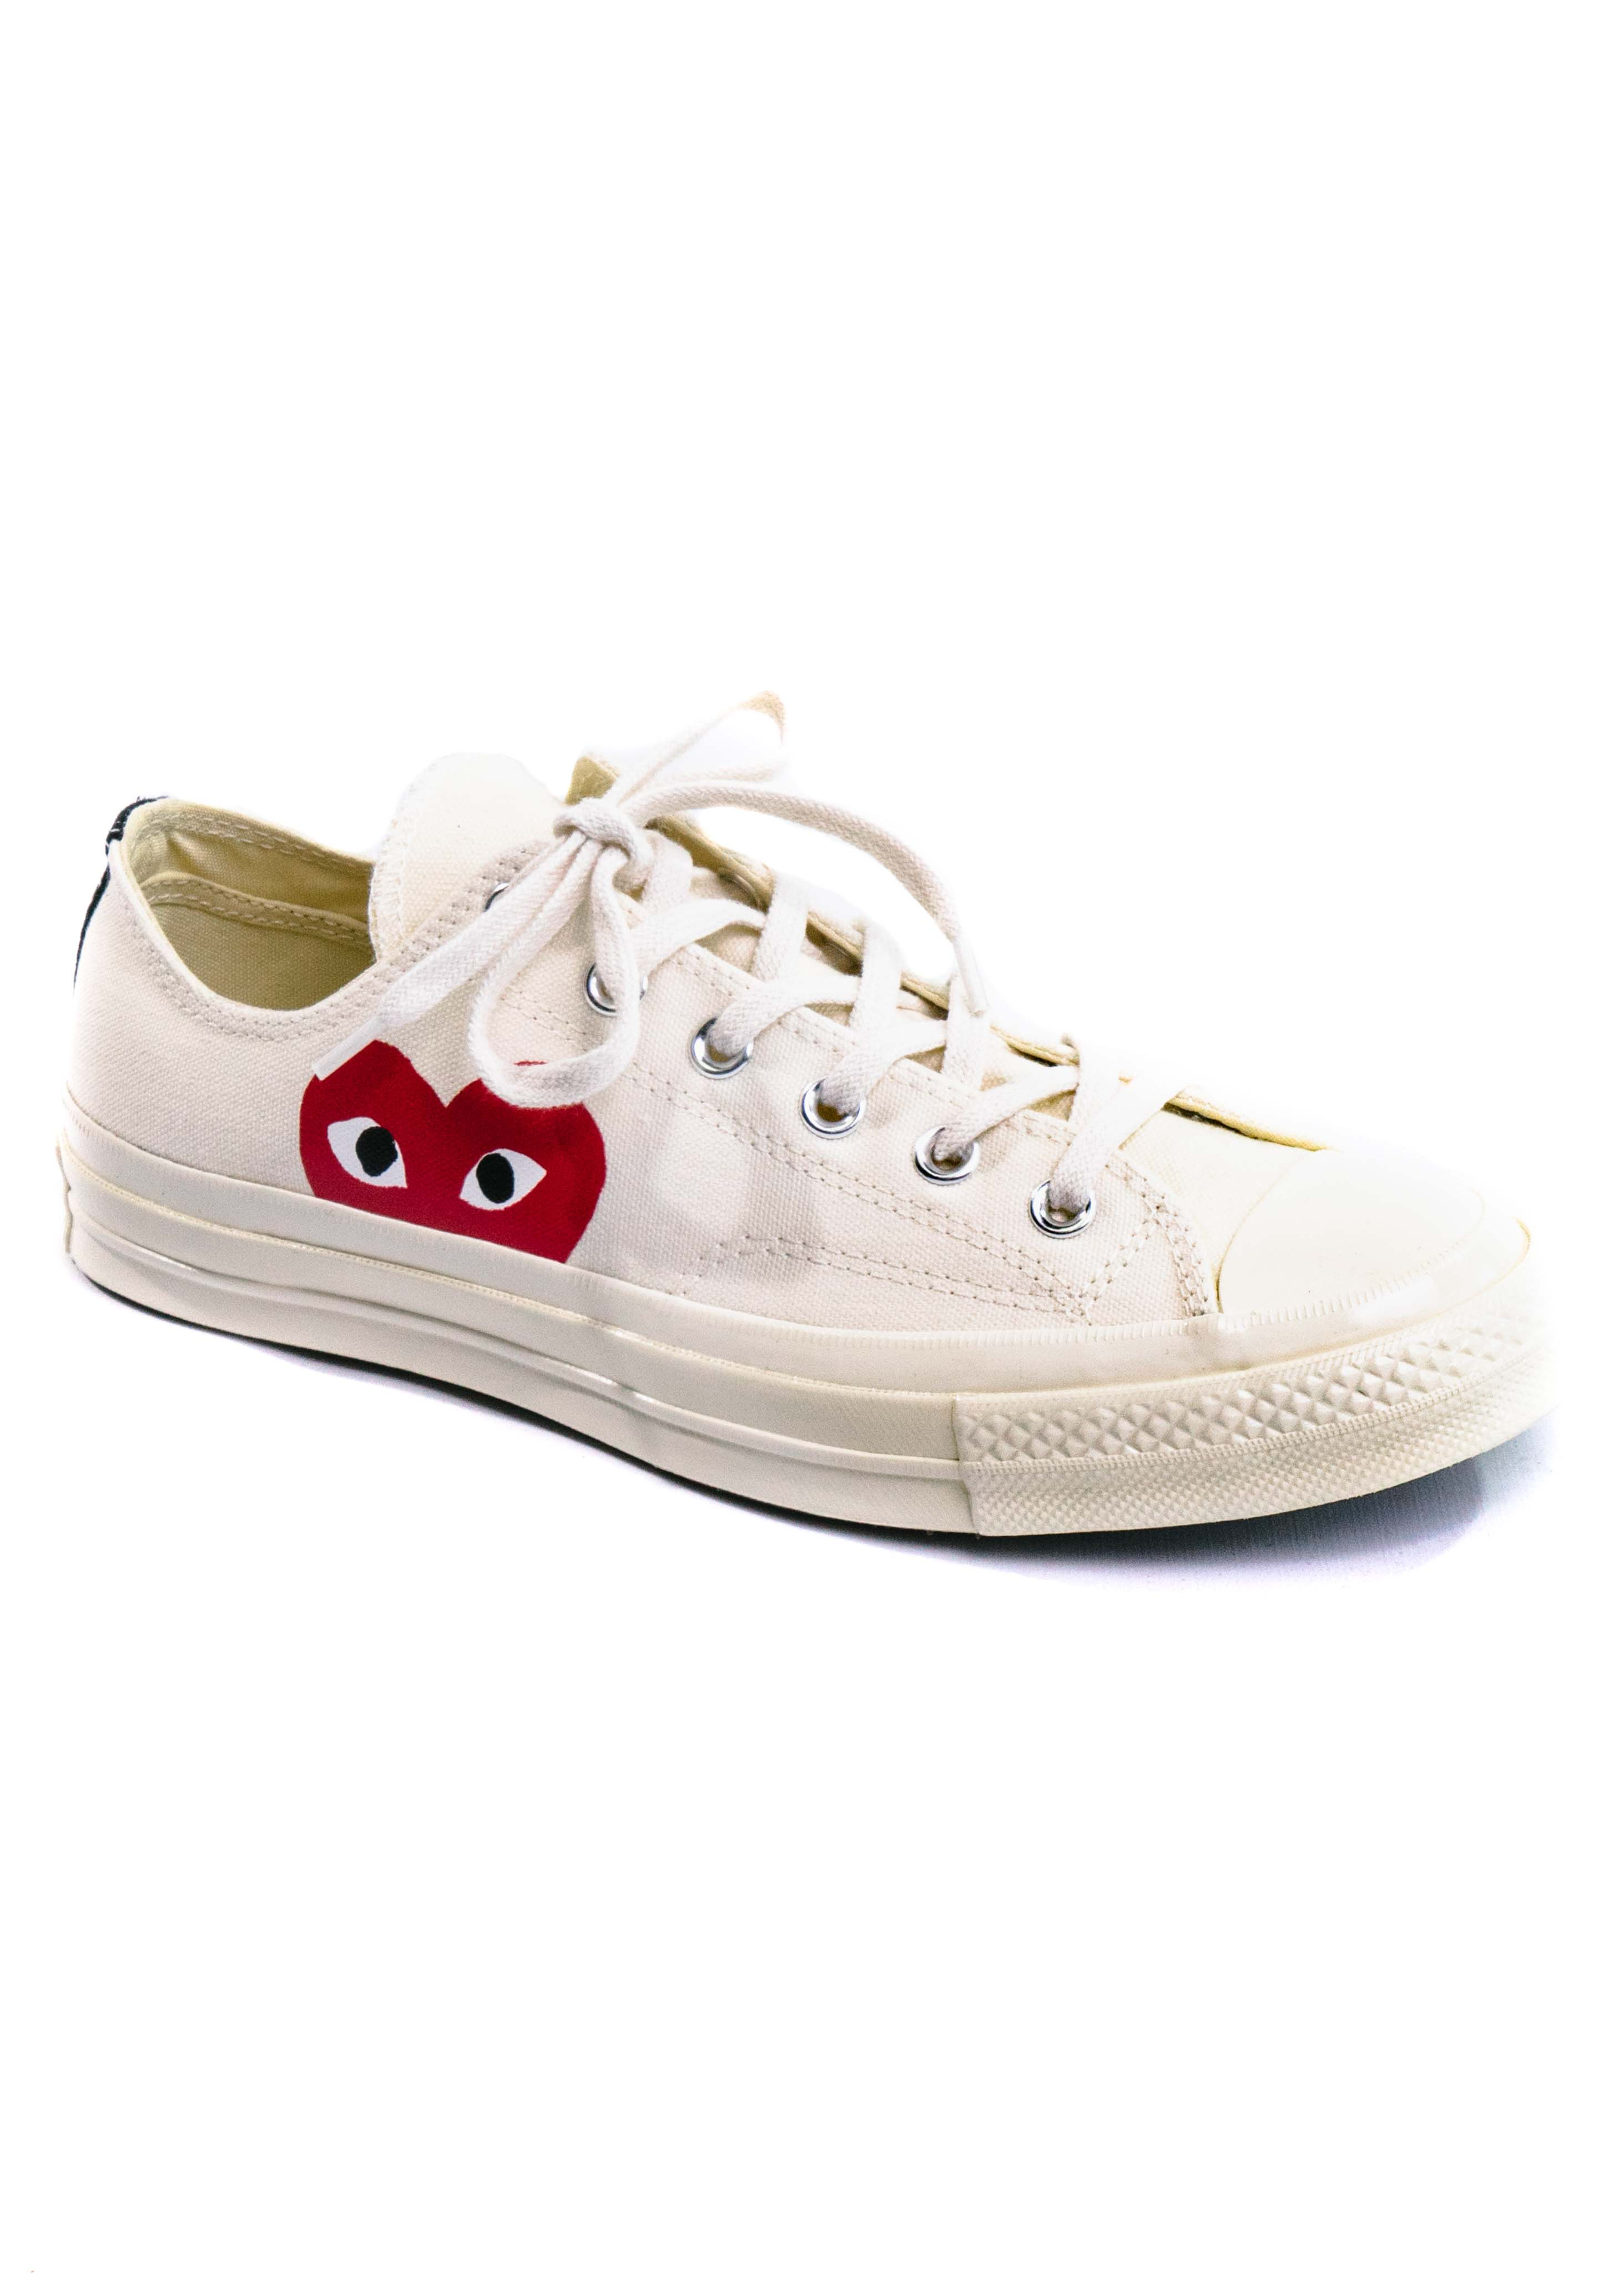 comme des gar231ons play x converse chuck taylor low white